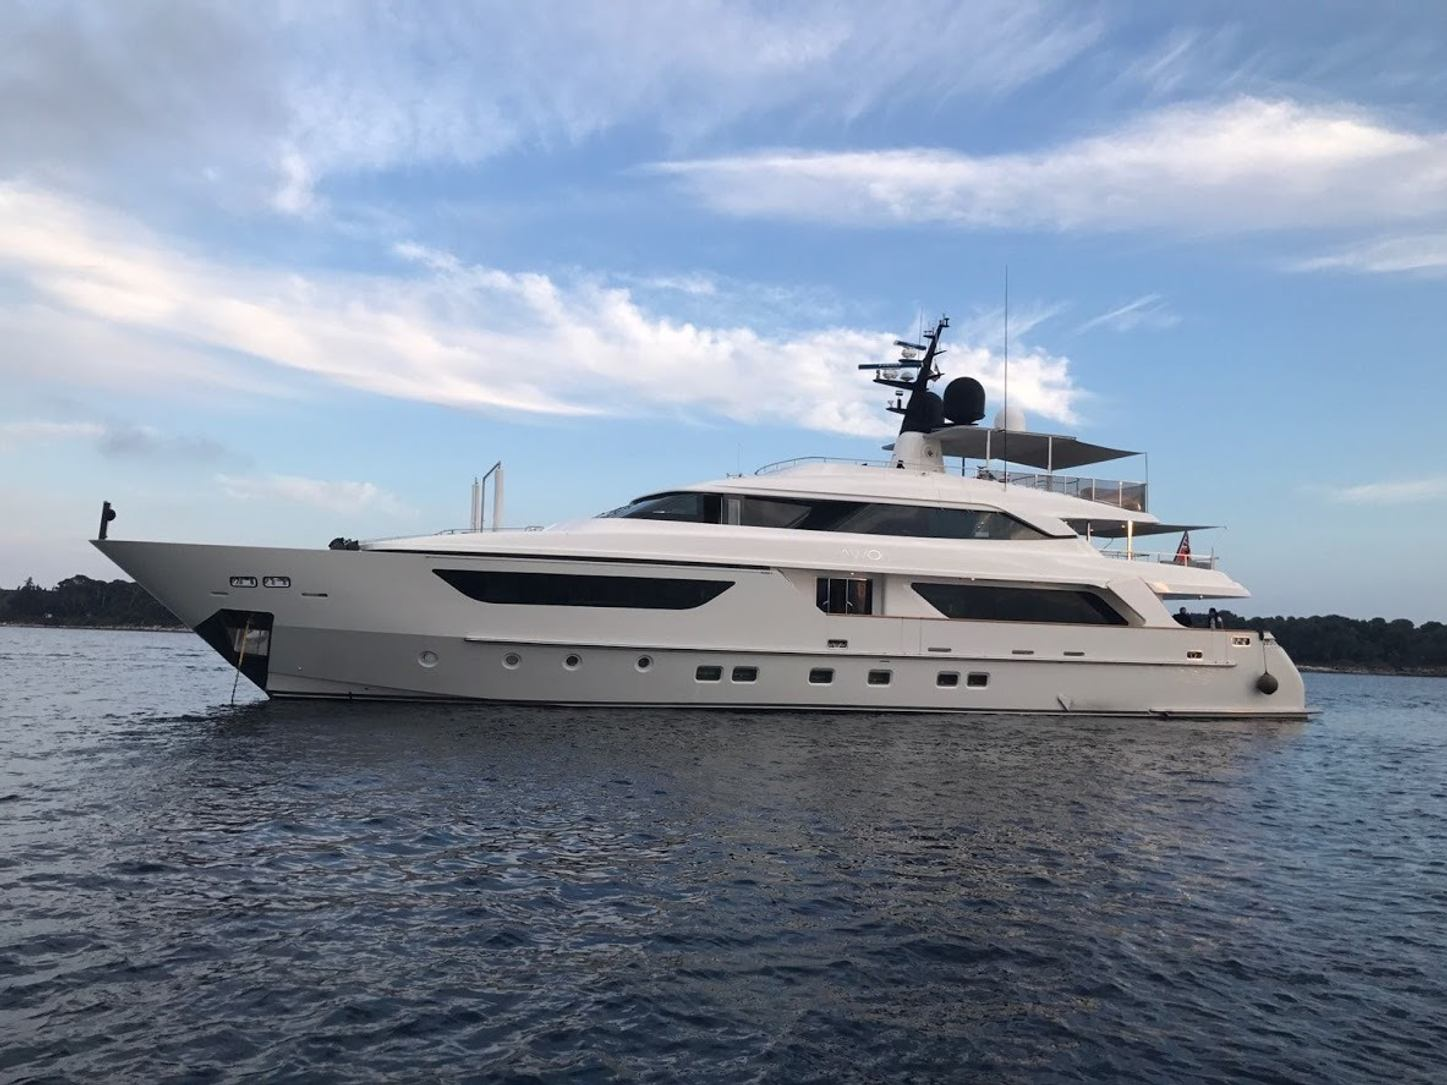 motor yacht AWOL anchored in the Mediterranean on a luxury charter vacation